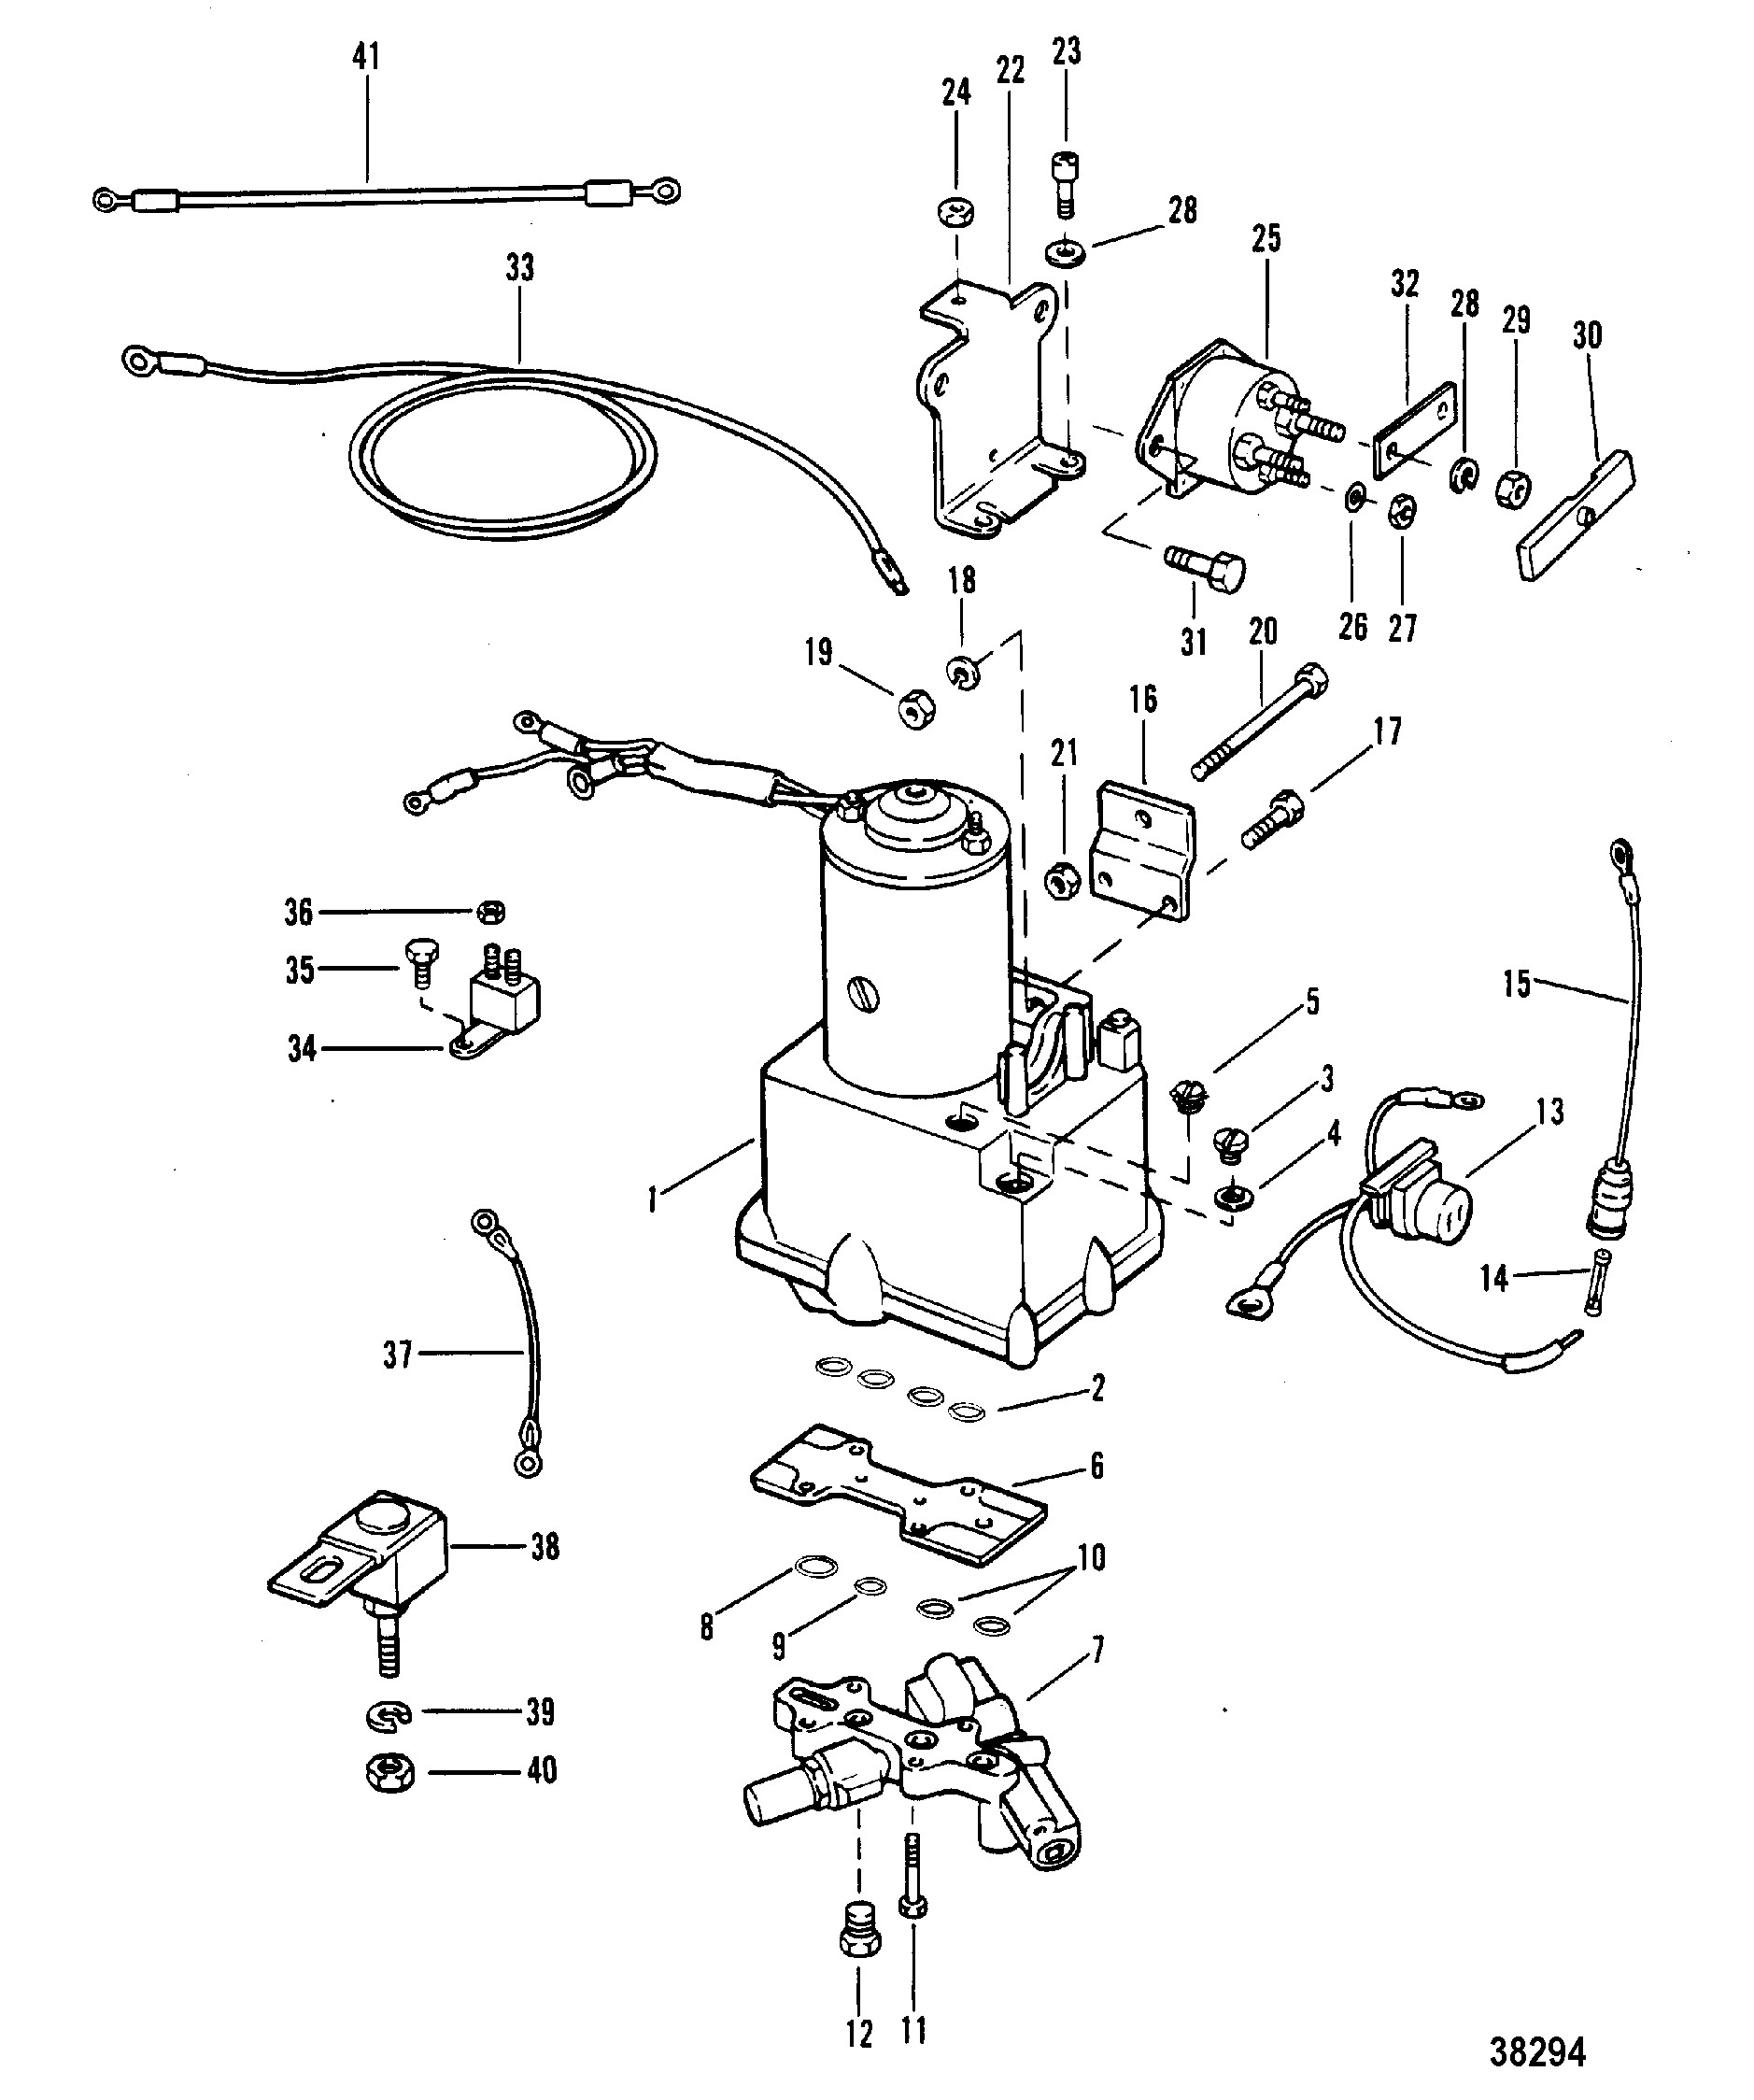 Mercruiser Trim Solenoid Wiring Diagram Unique Image For Boat Solenoids Sourcecapecodcottagerentalus Mercury Mariner 50 4 Cyl Up